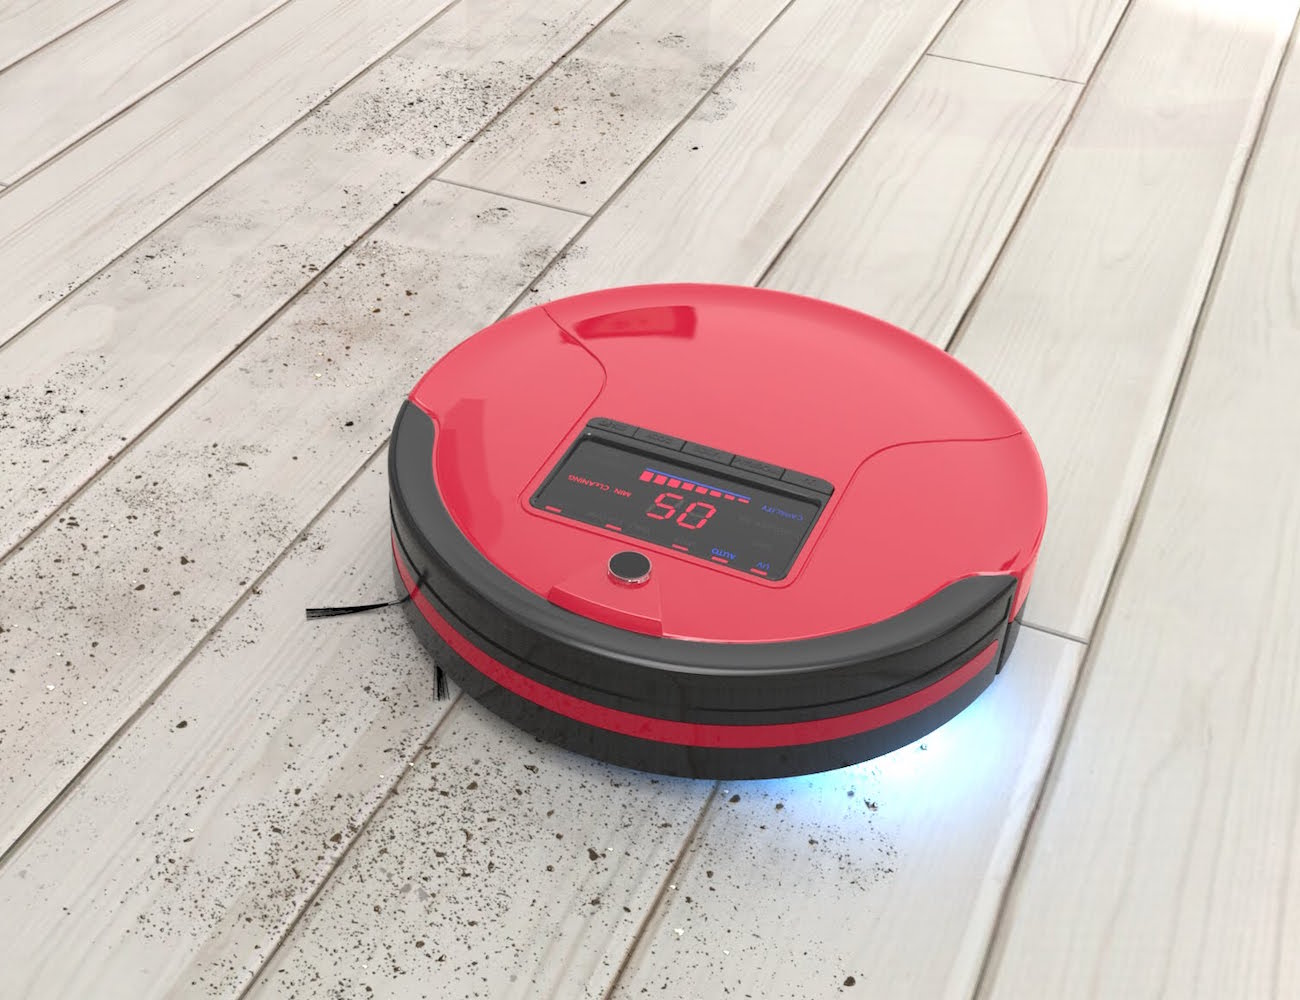 BObsweep+Robotic+Vacuum+And+Mop